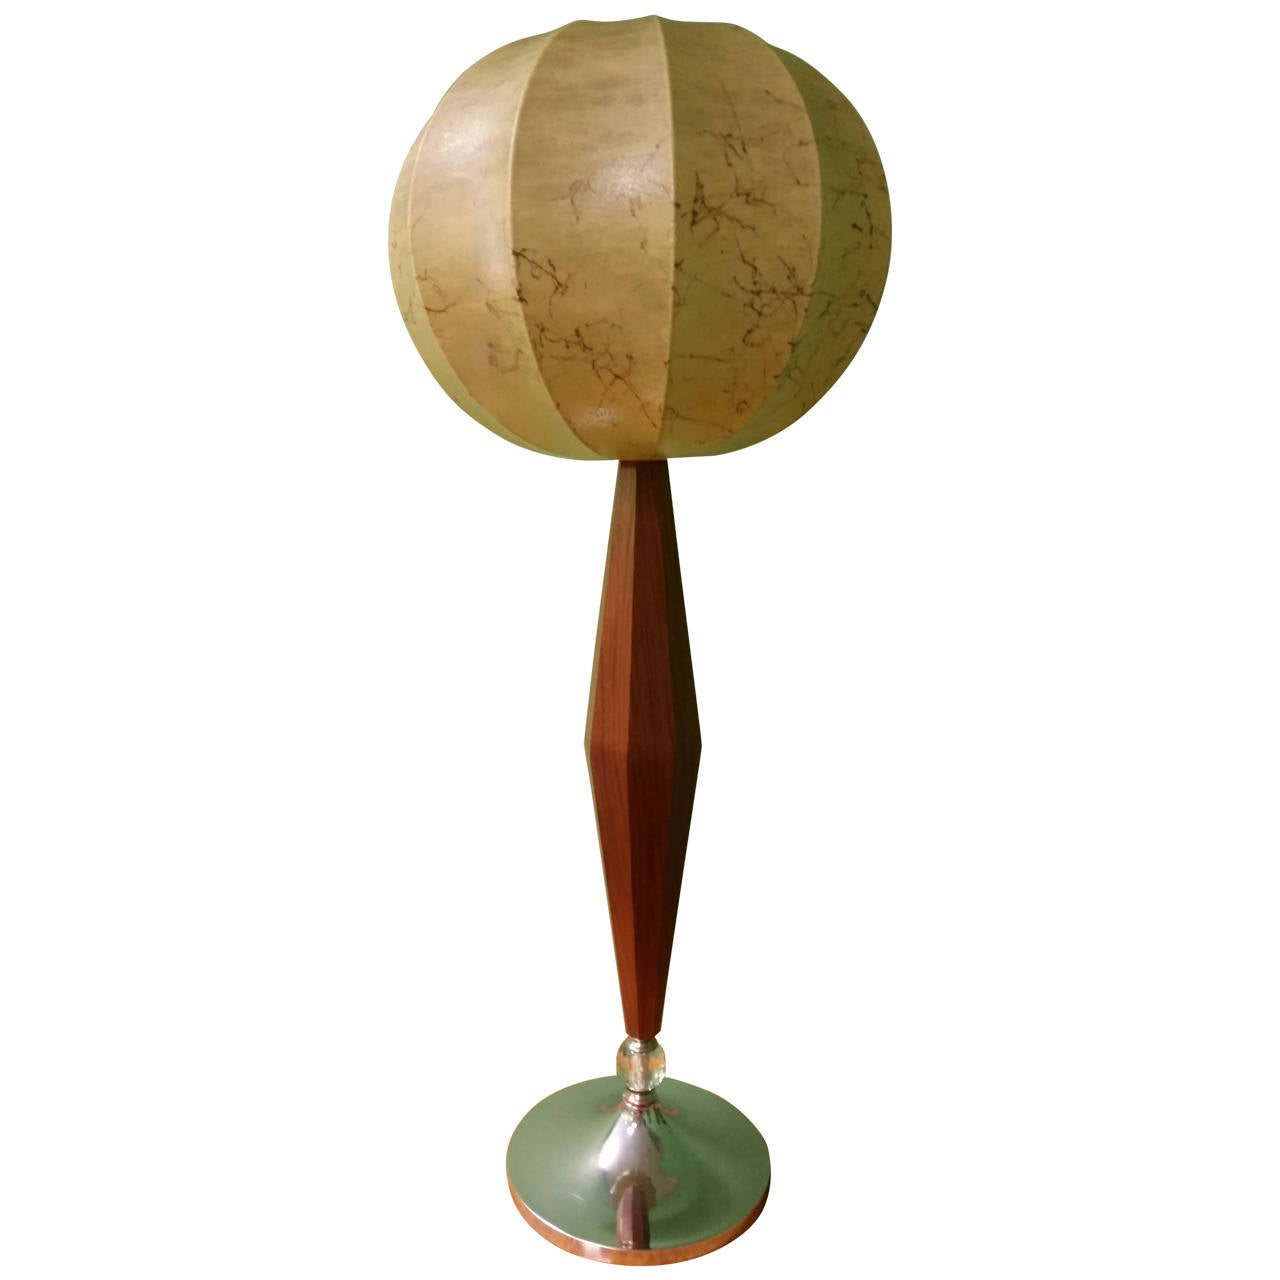 Mid 20th century design table or floor lamp at 1stdibs for Floor lamp 100cm